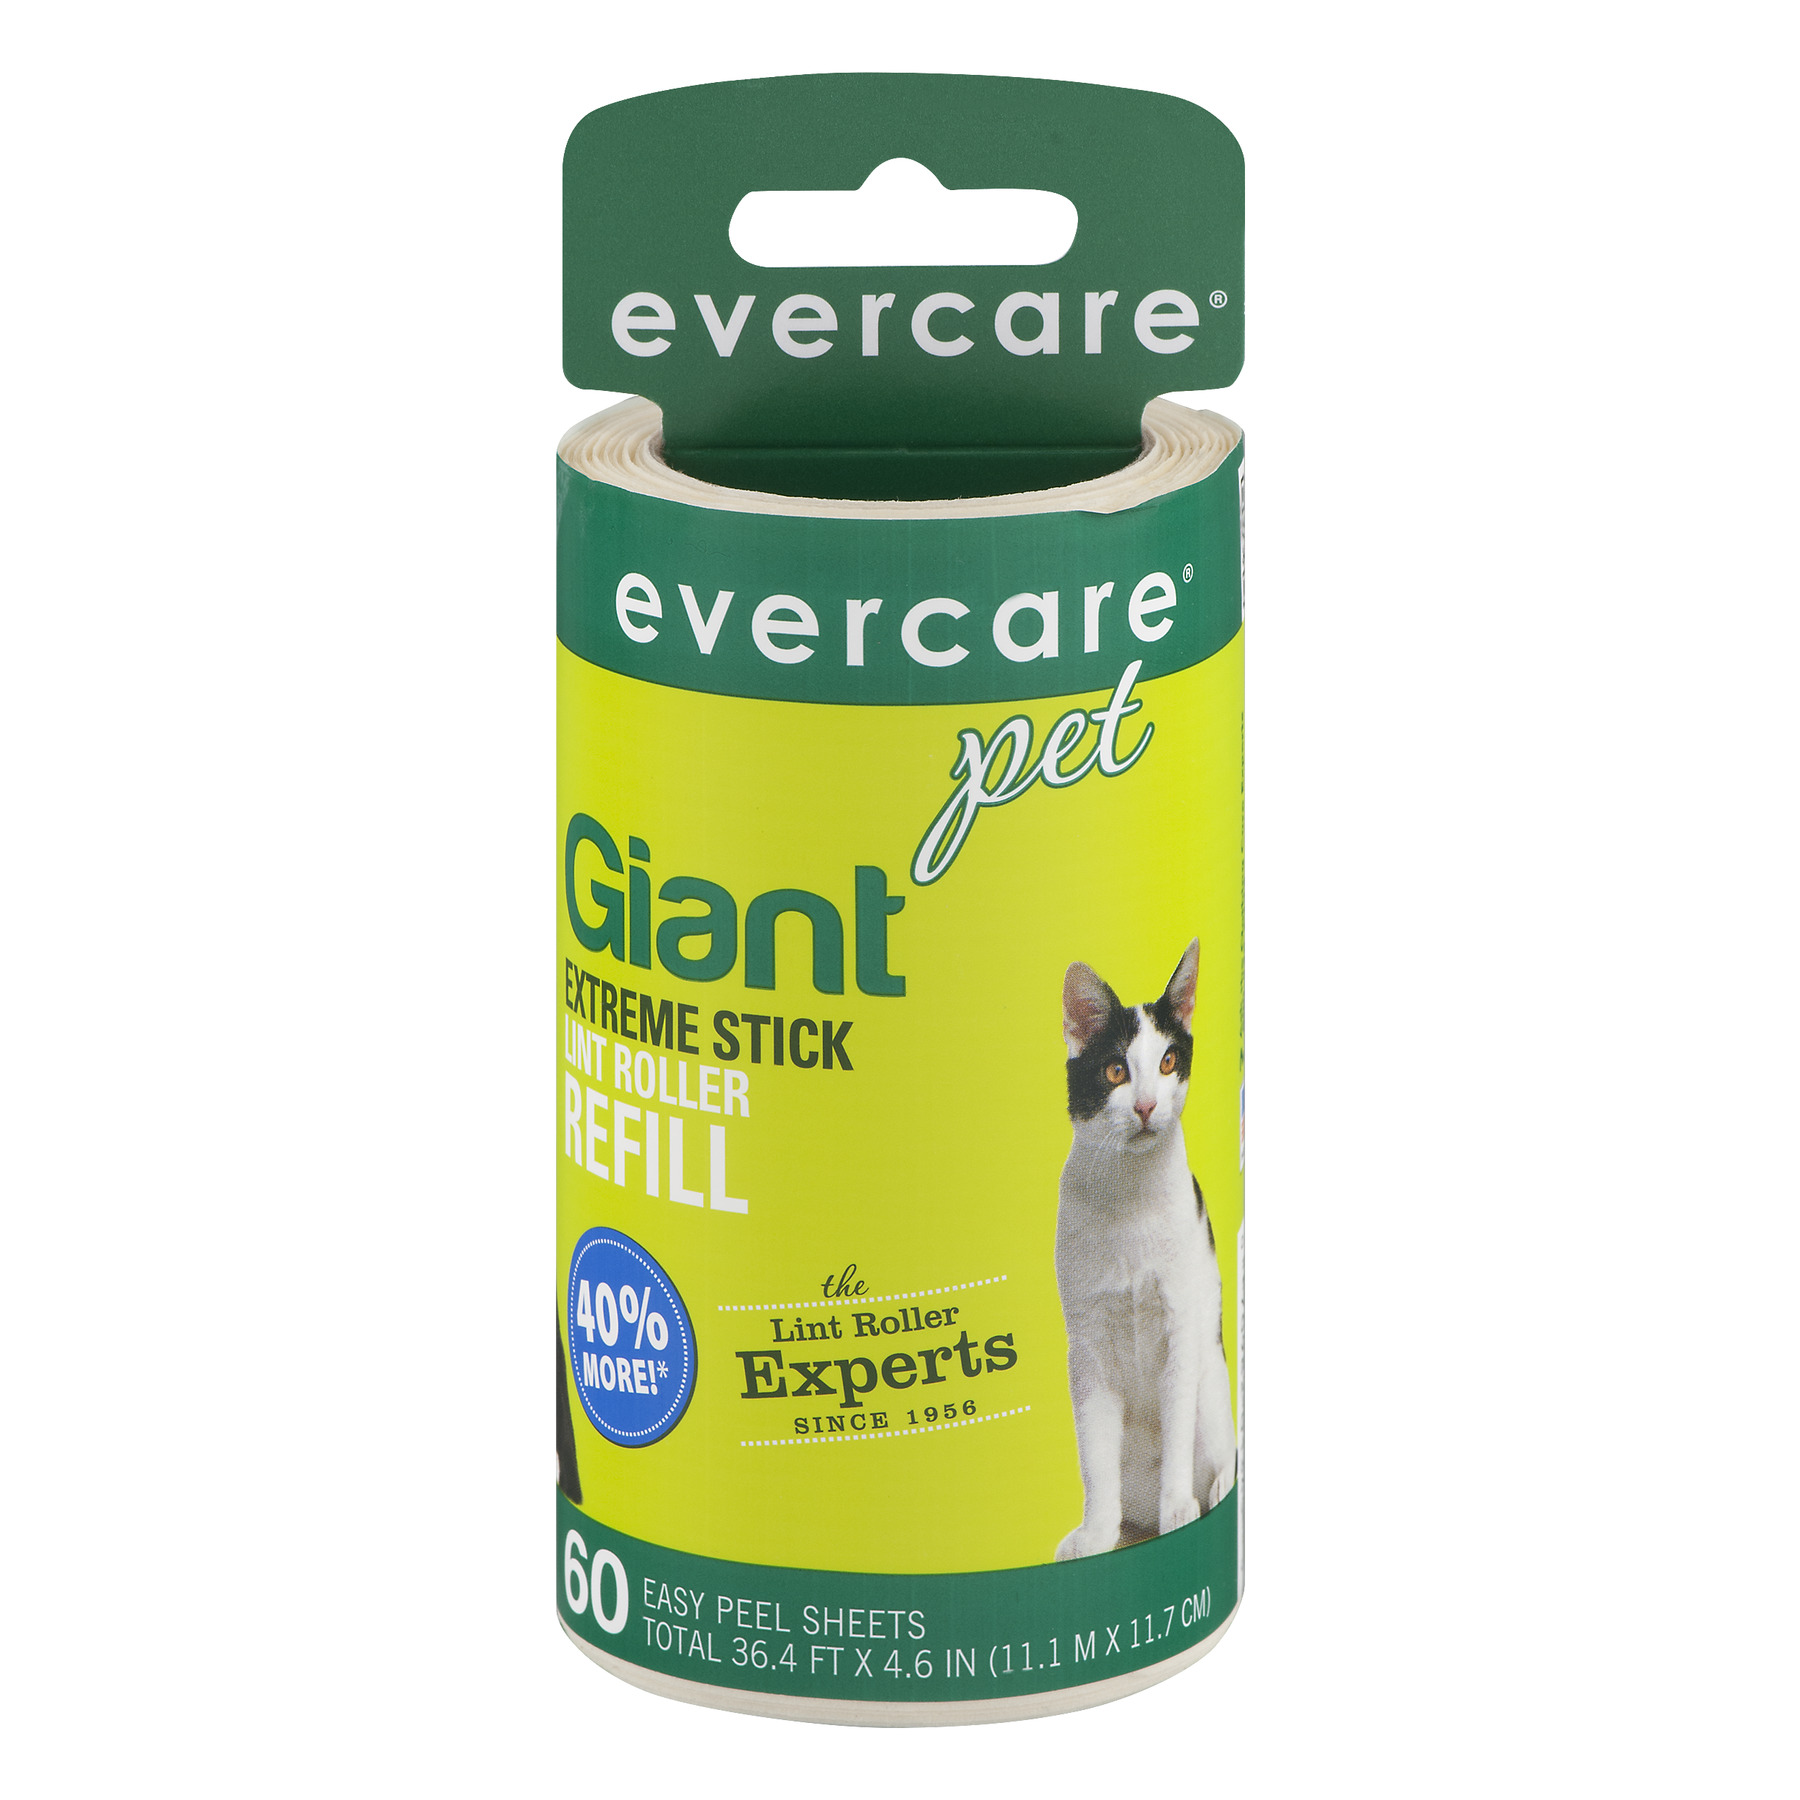 Evercare Pet Giant Extreme Stick Lint Roller Refill - 60 Sheets, 60.0 CT